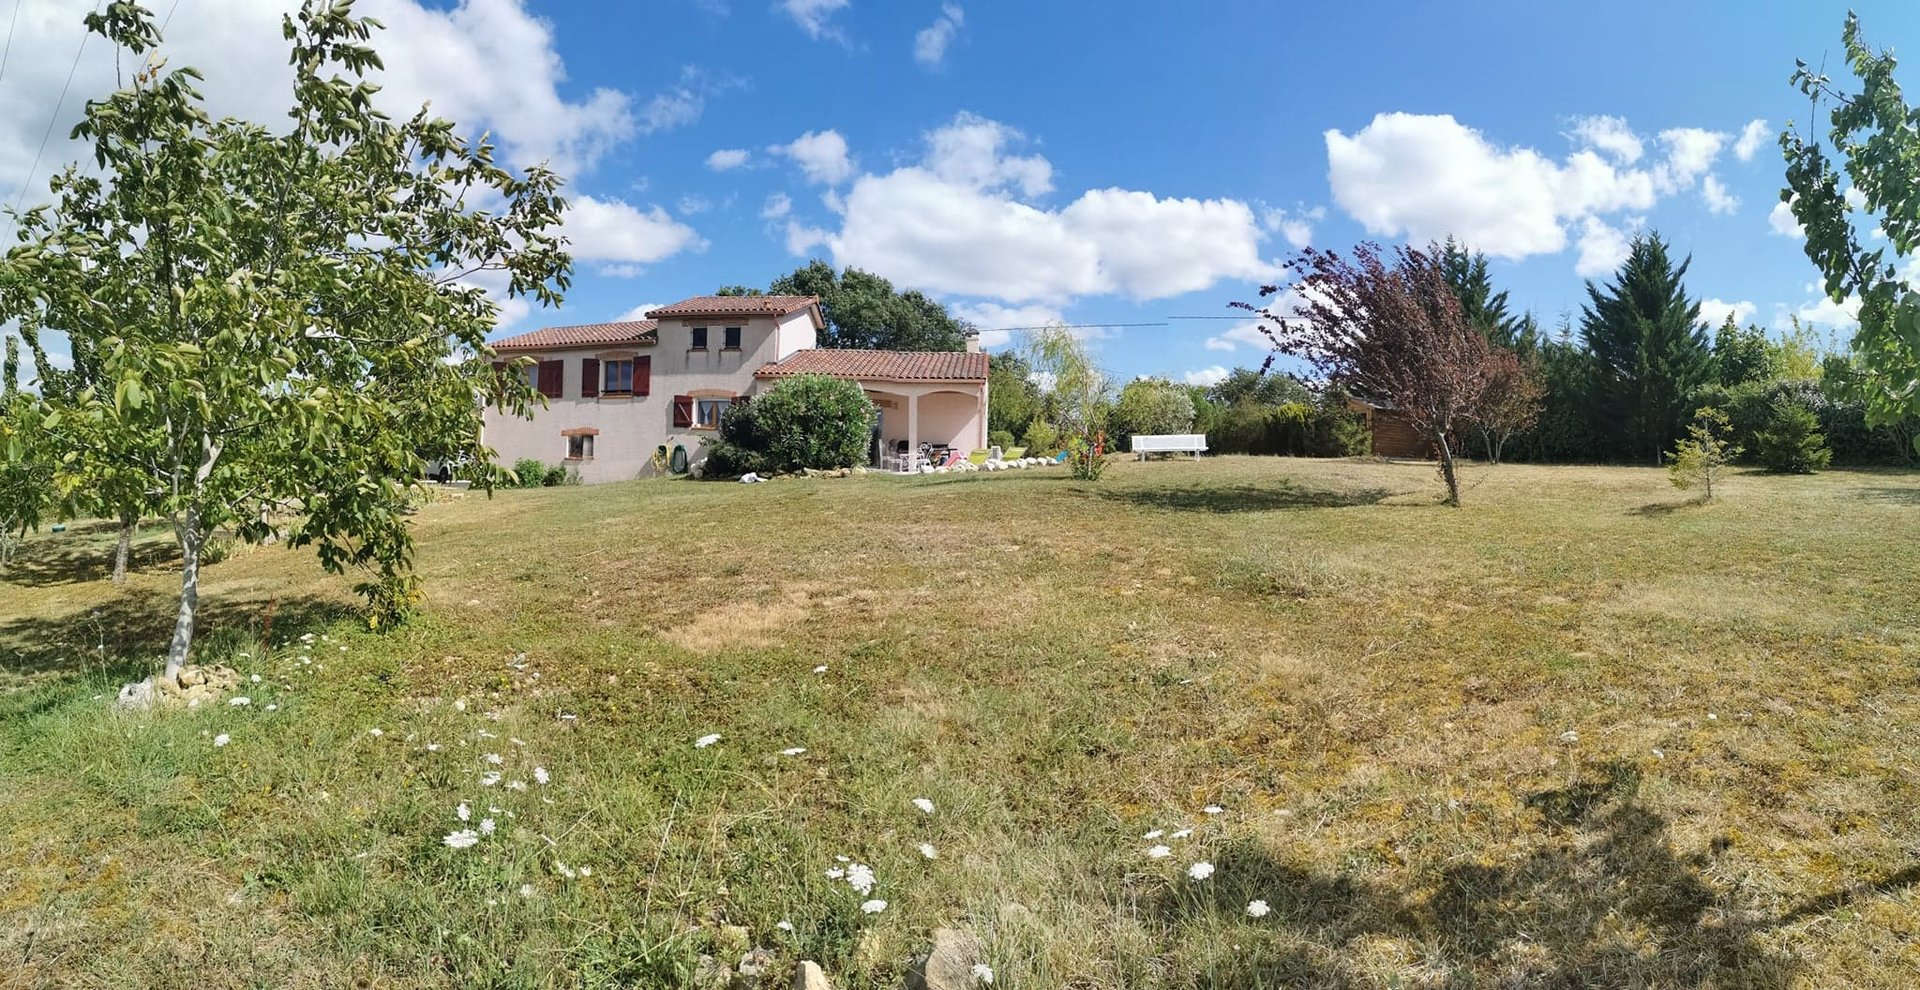 house 162 sqm on land with unobstructed views